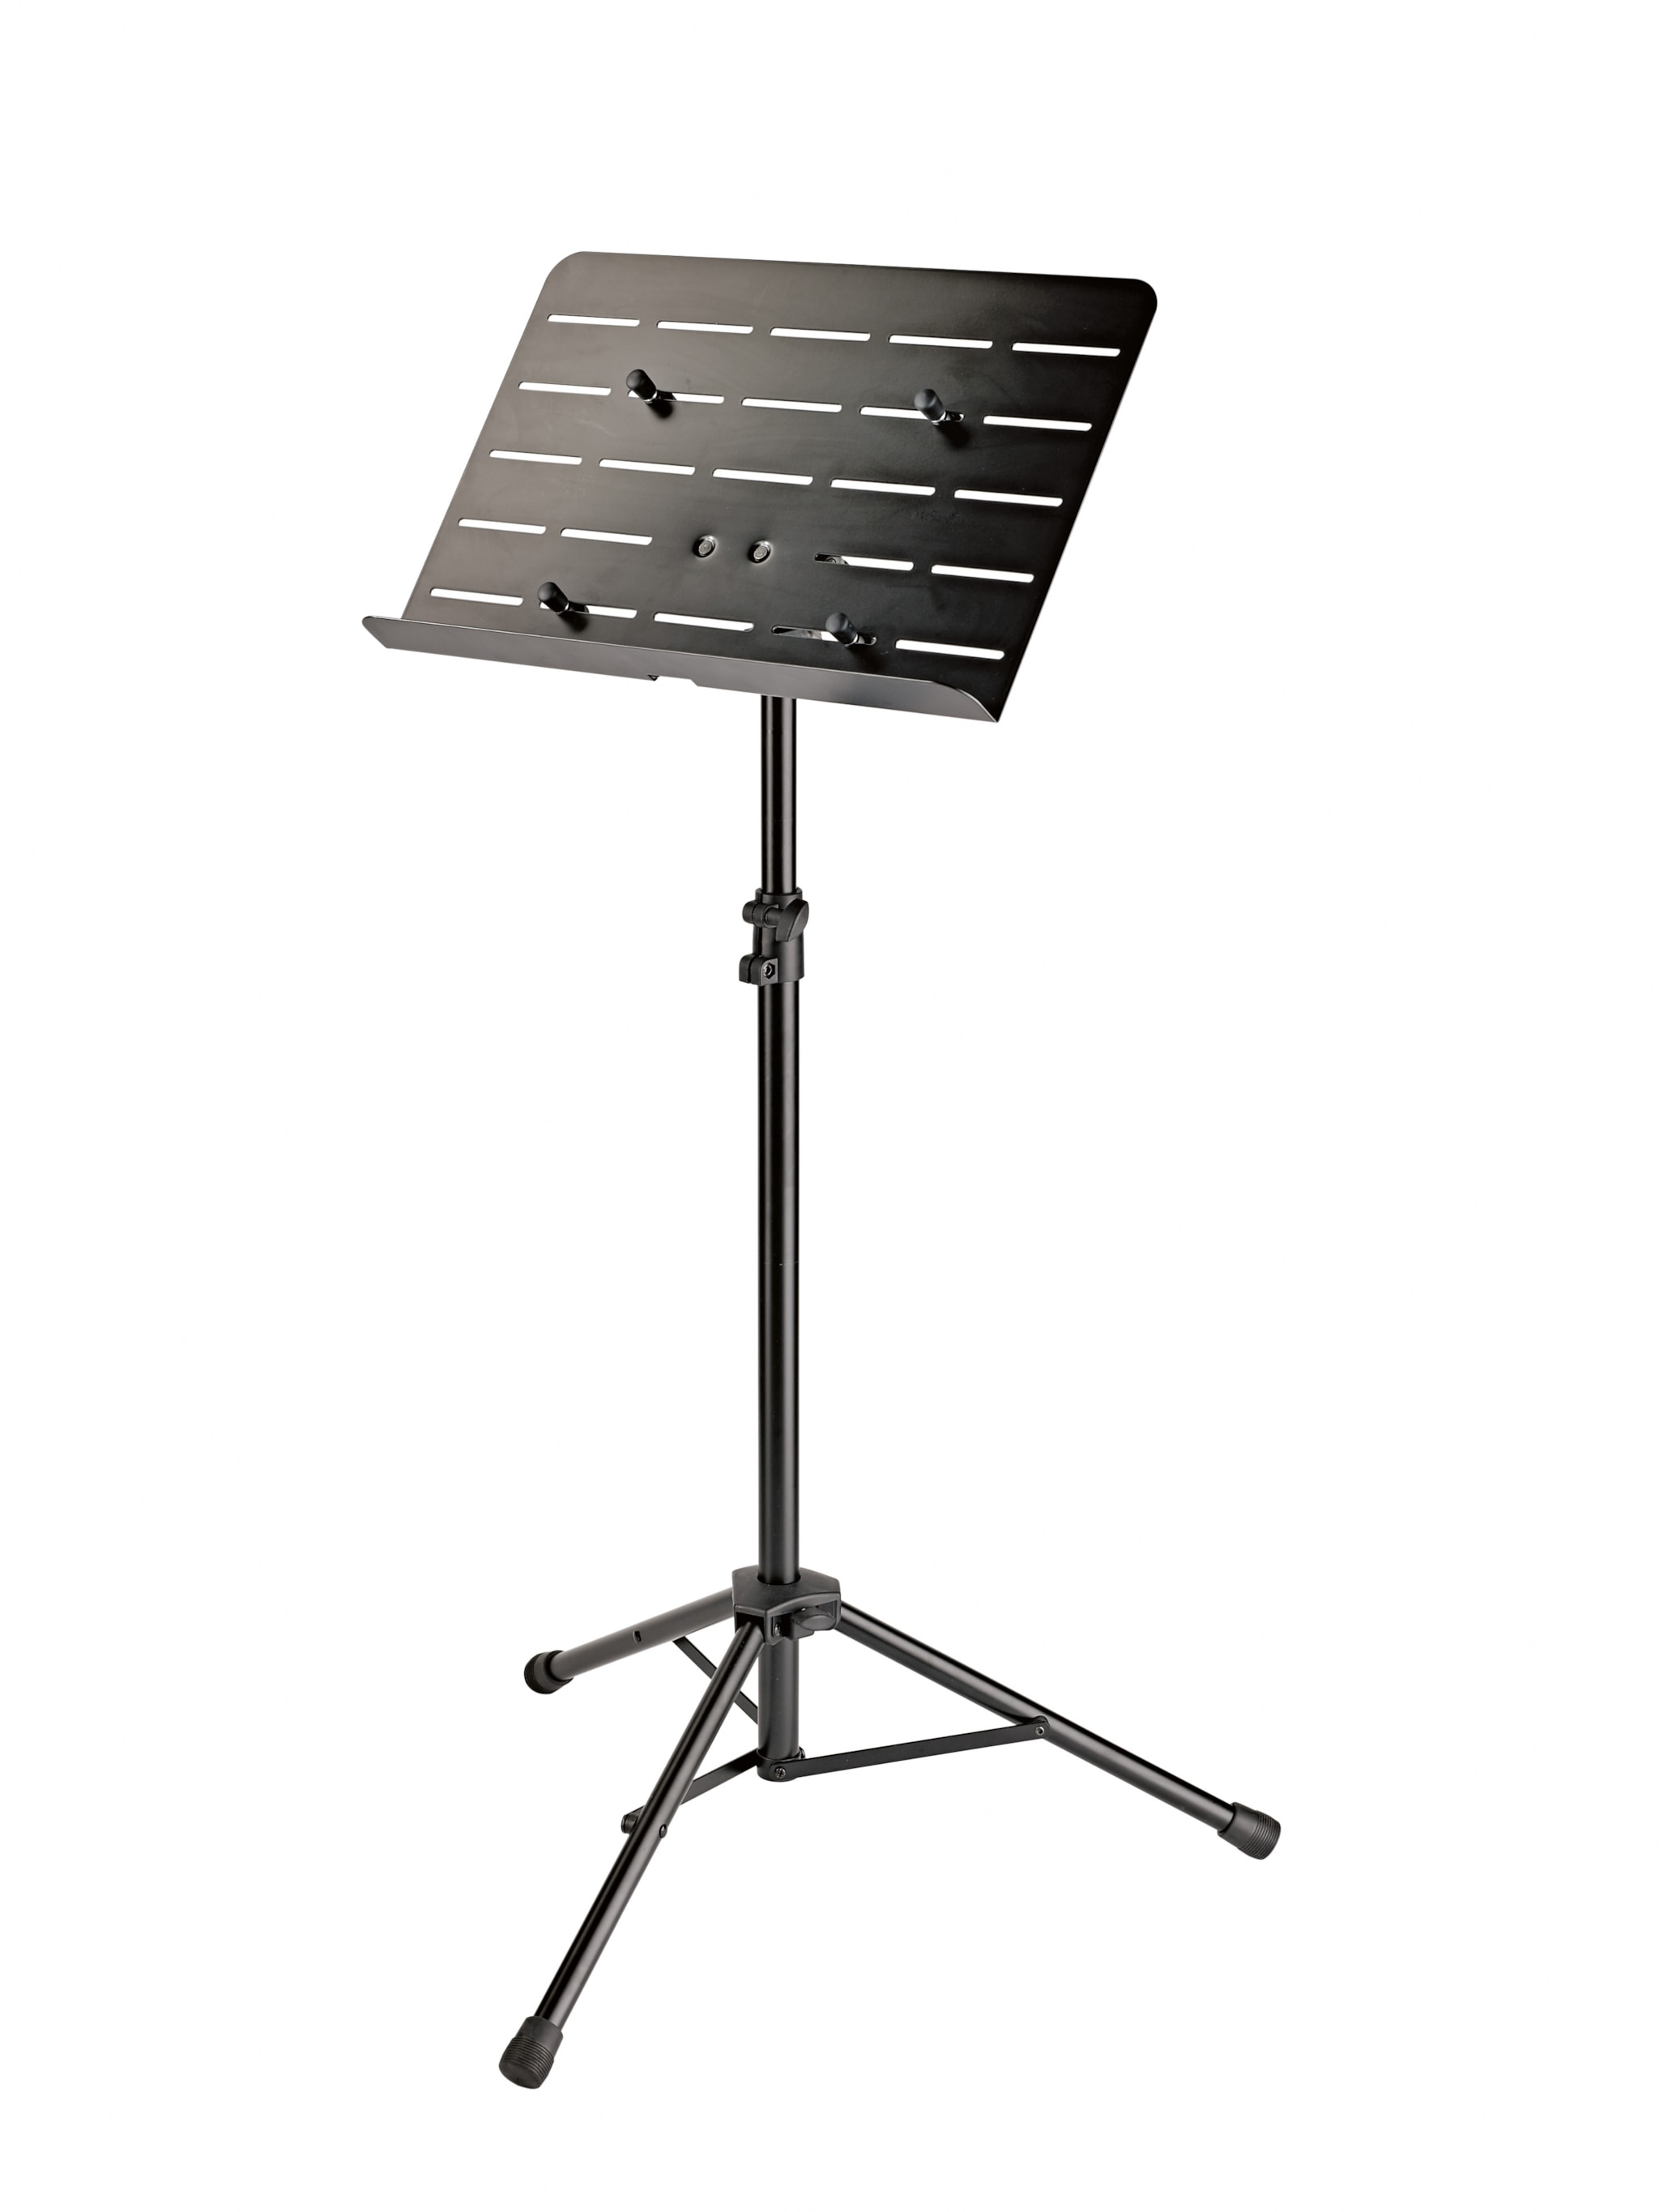 KM11965 - Orchestra music stand with tablet holder